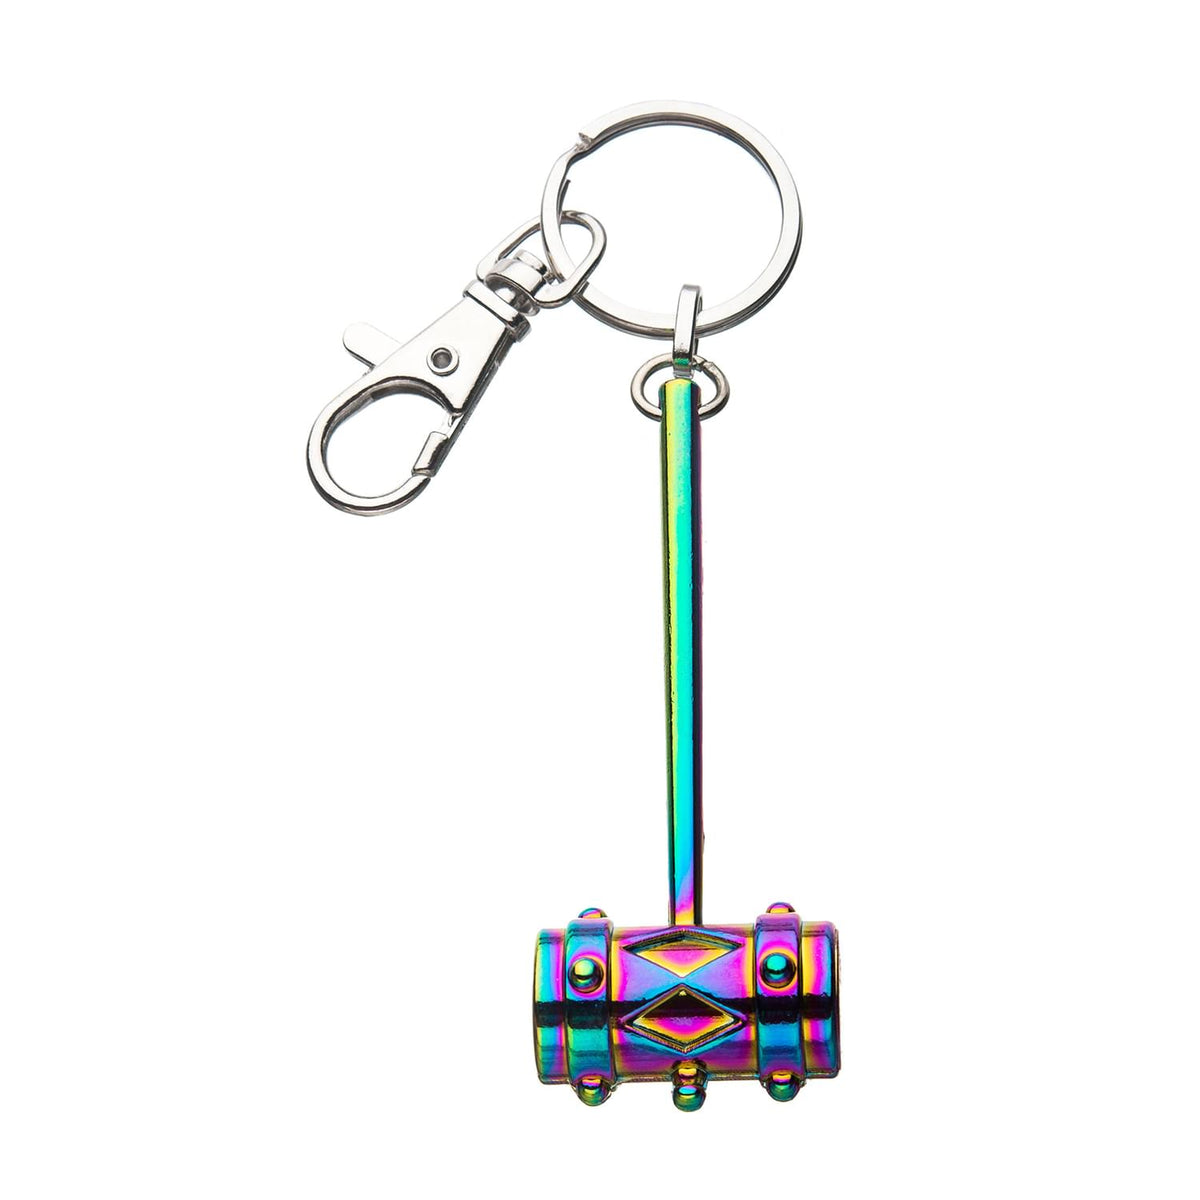 Birds of Prey Harley Quinn 3D Mallet with Rainbow Finish Metal Key Chain